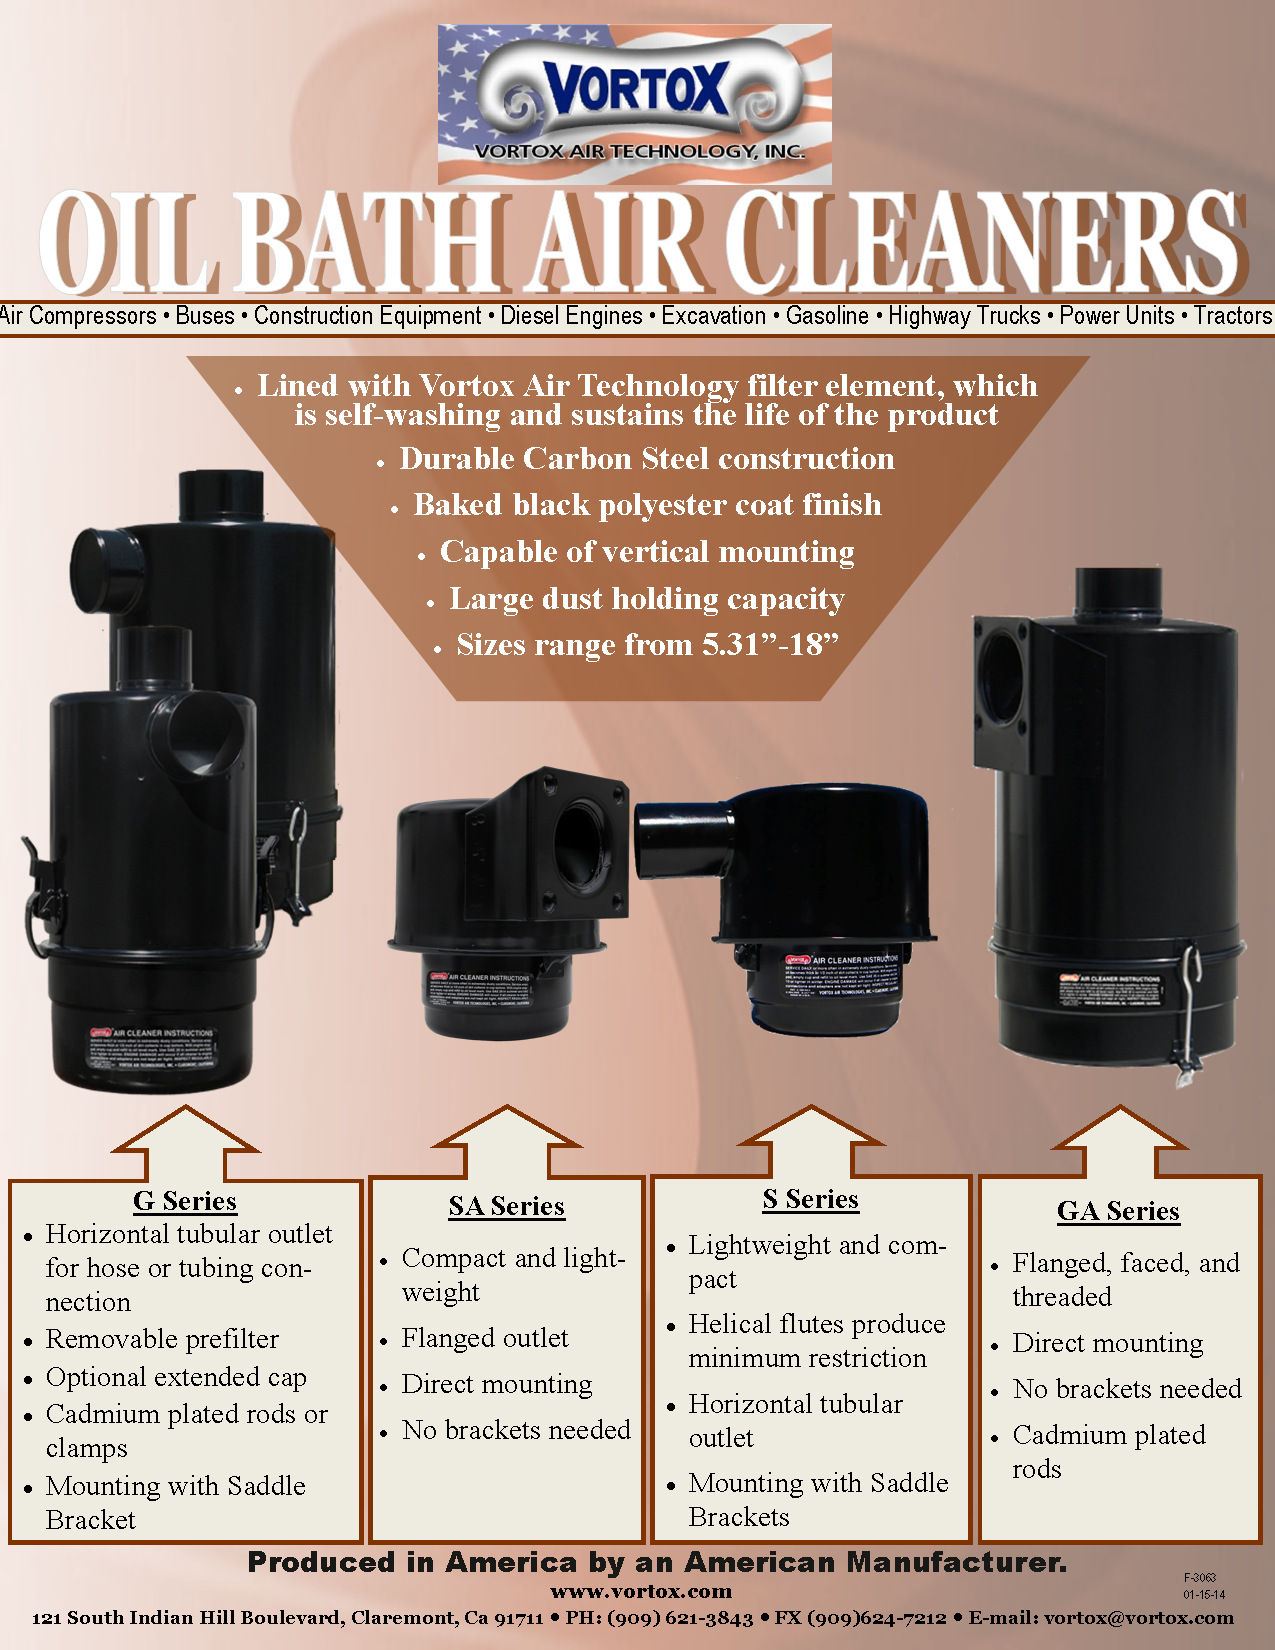 Did you know...in 1918 Vortox invented the Oil Bath Air